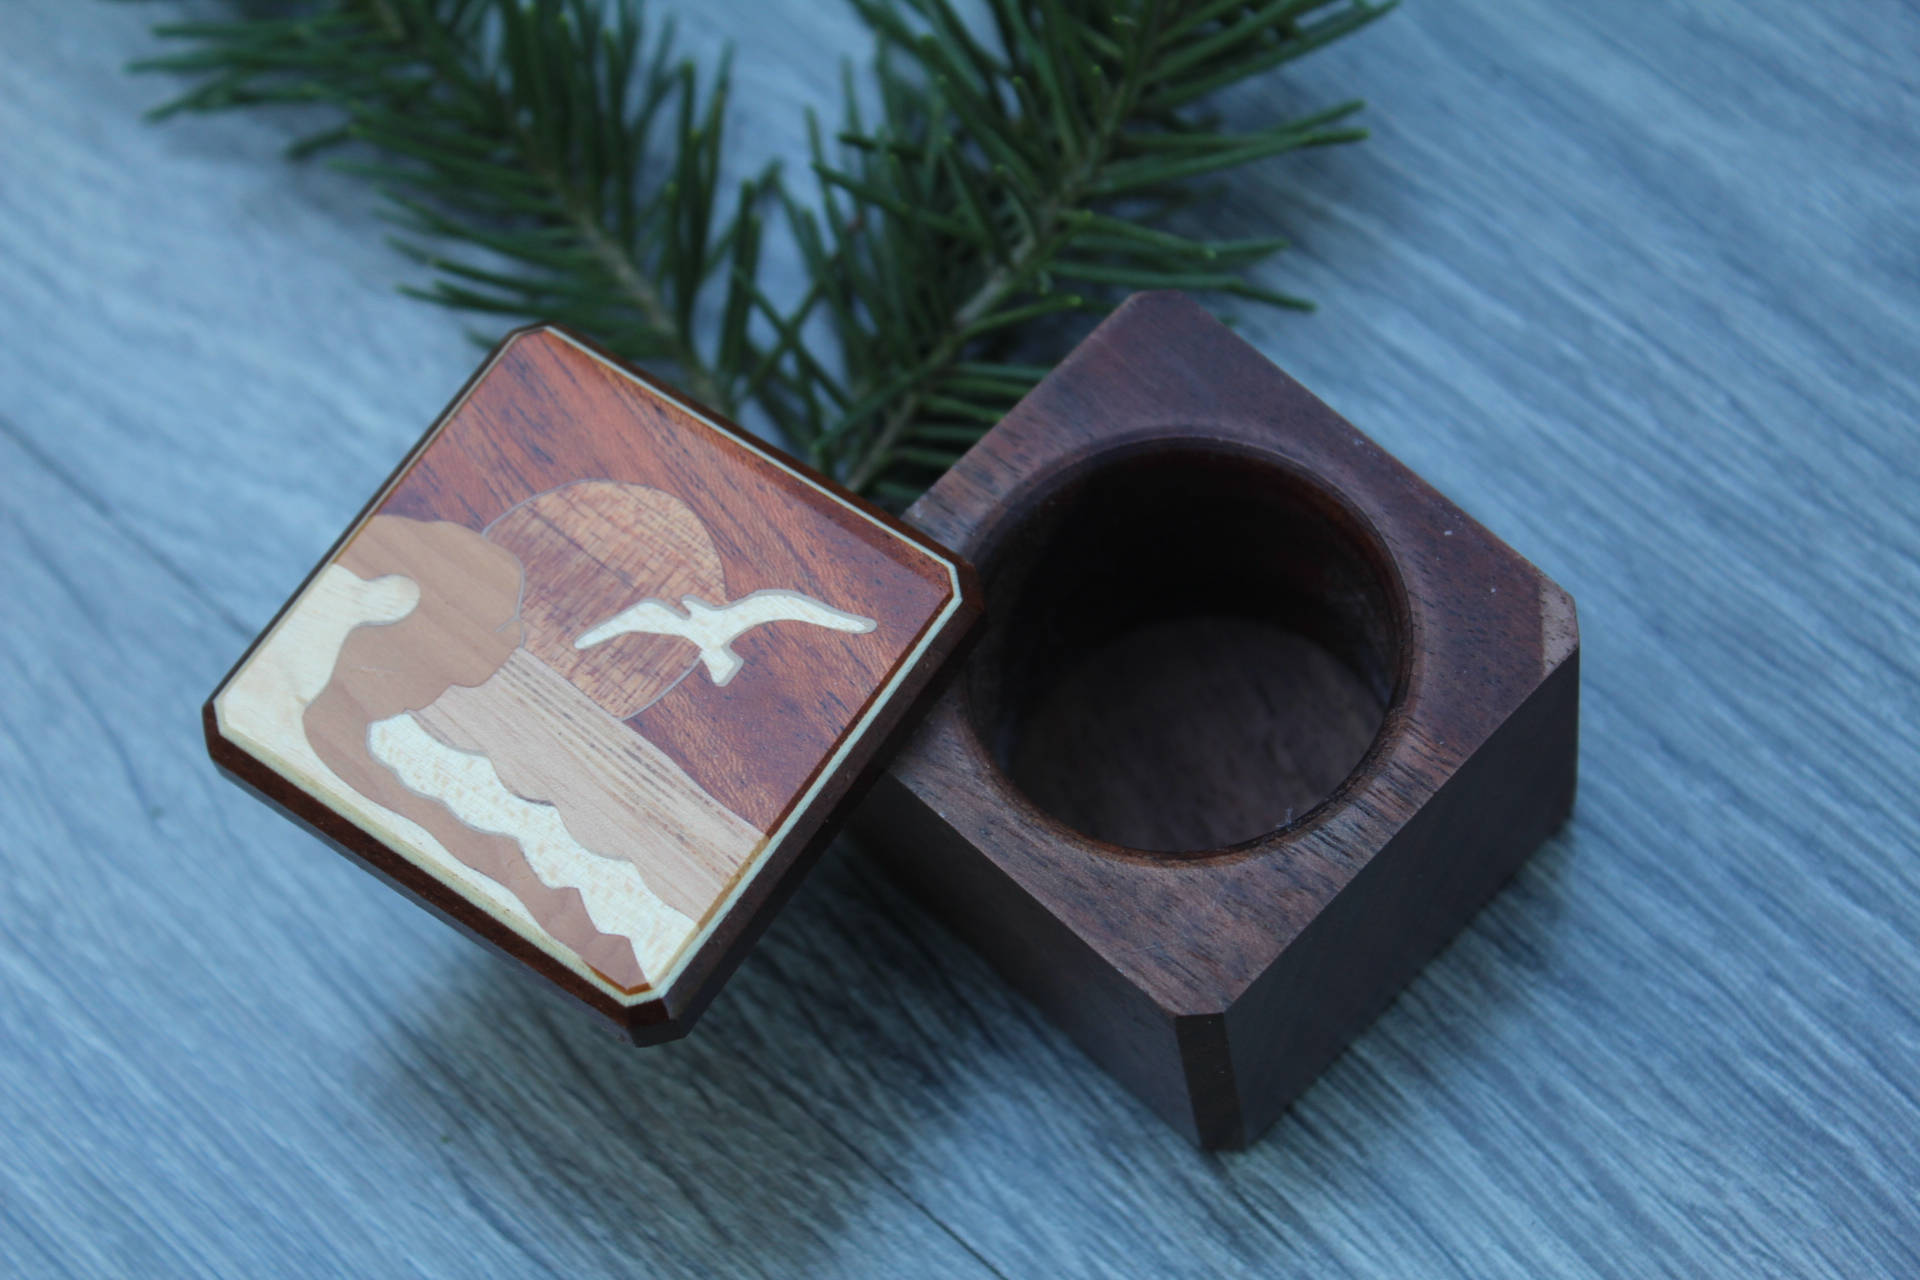 Wood wedding Ring Box Sea Holiday Mountain Handmade Pill Box Jewelry Box His & Hers Ring Boxe Ring Bearer Box Wedding Ring Rustic Box Inlay